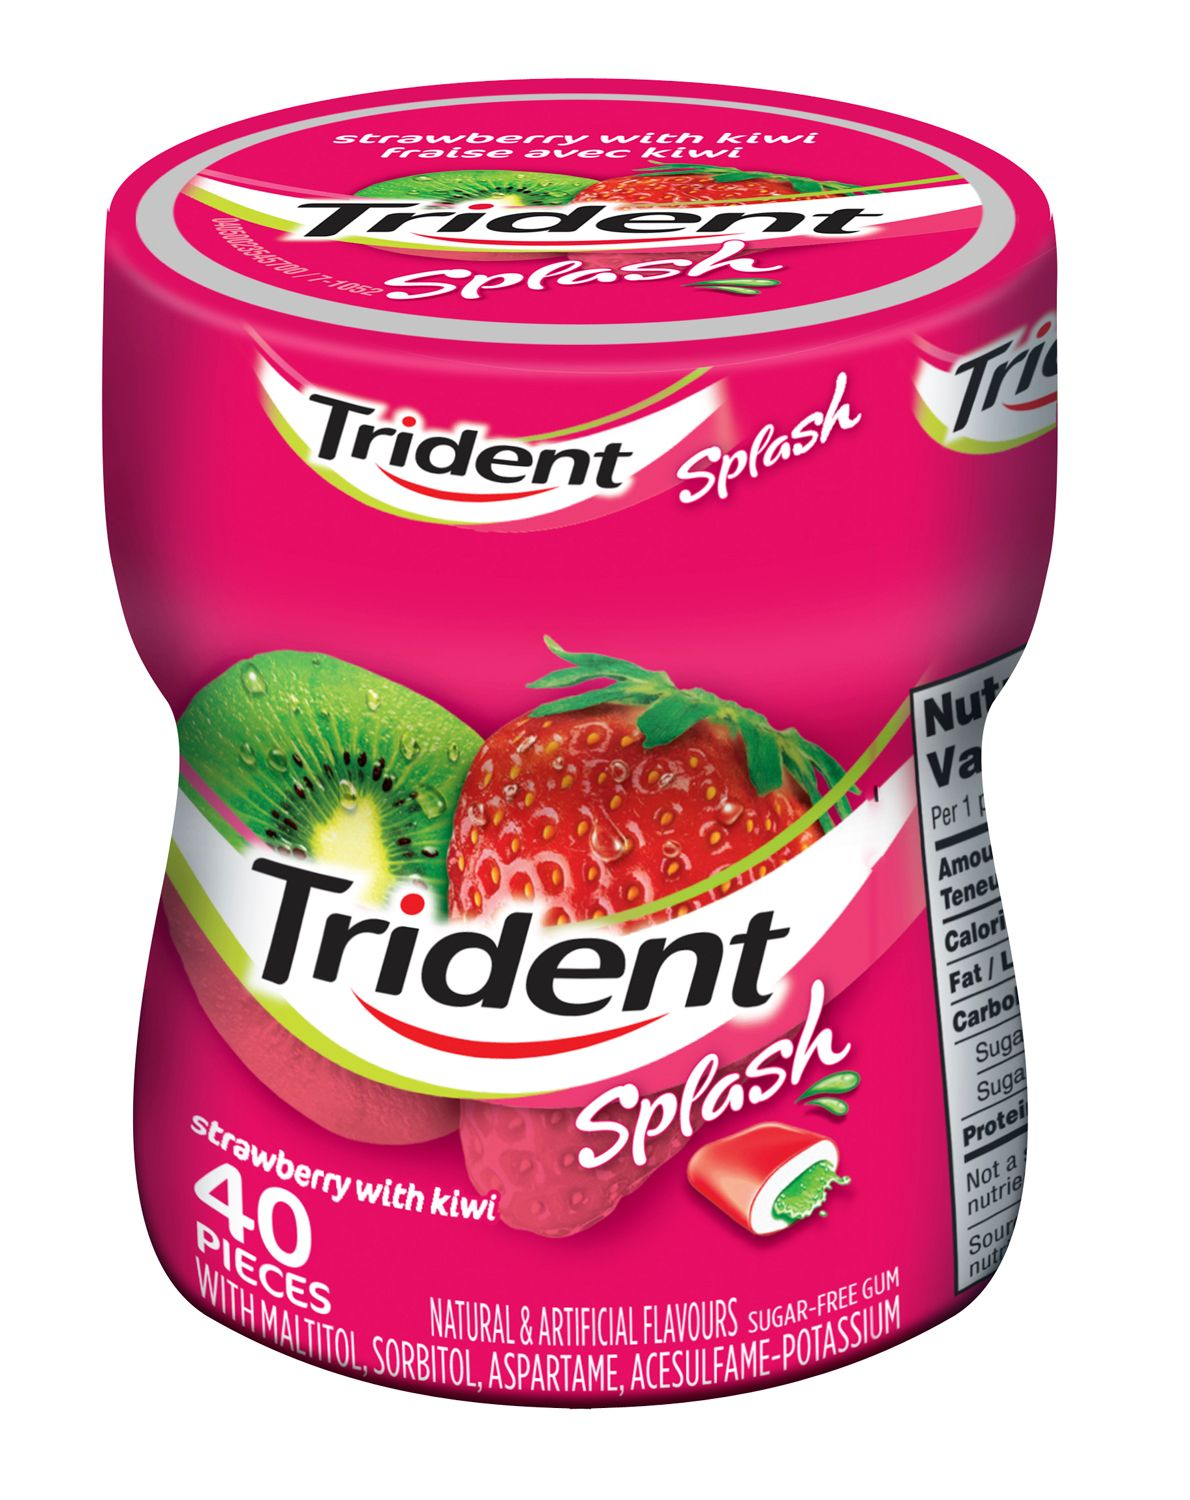 Trident Splash Strawberry Kiwi Gum 40 Count